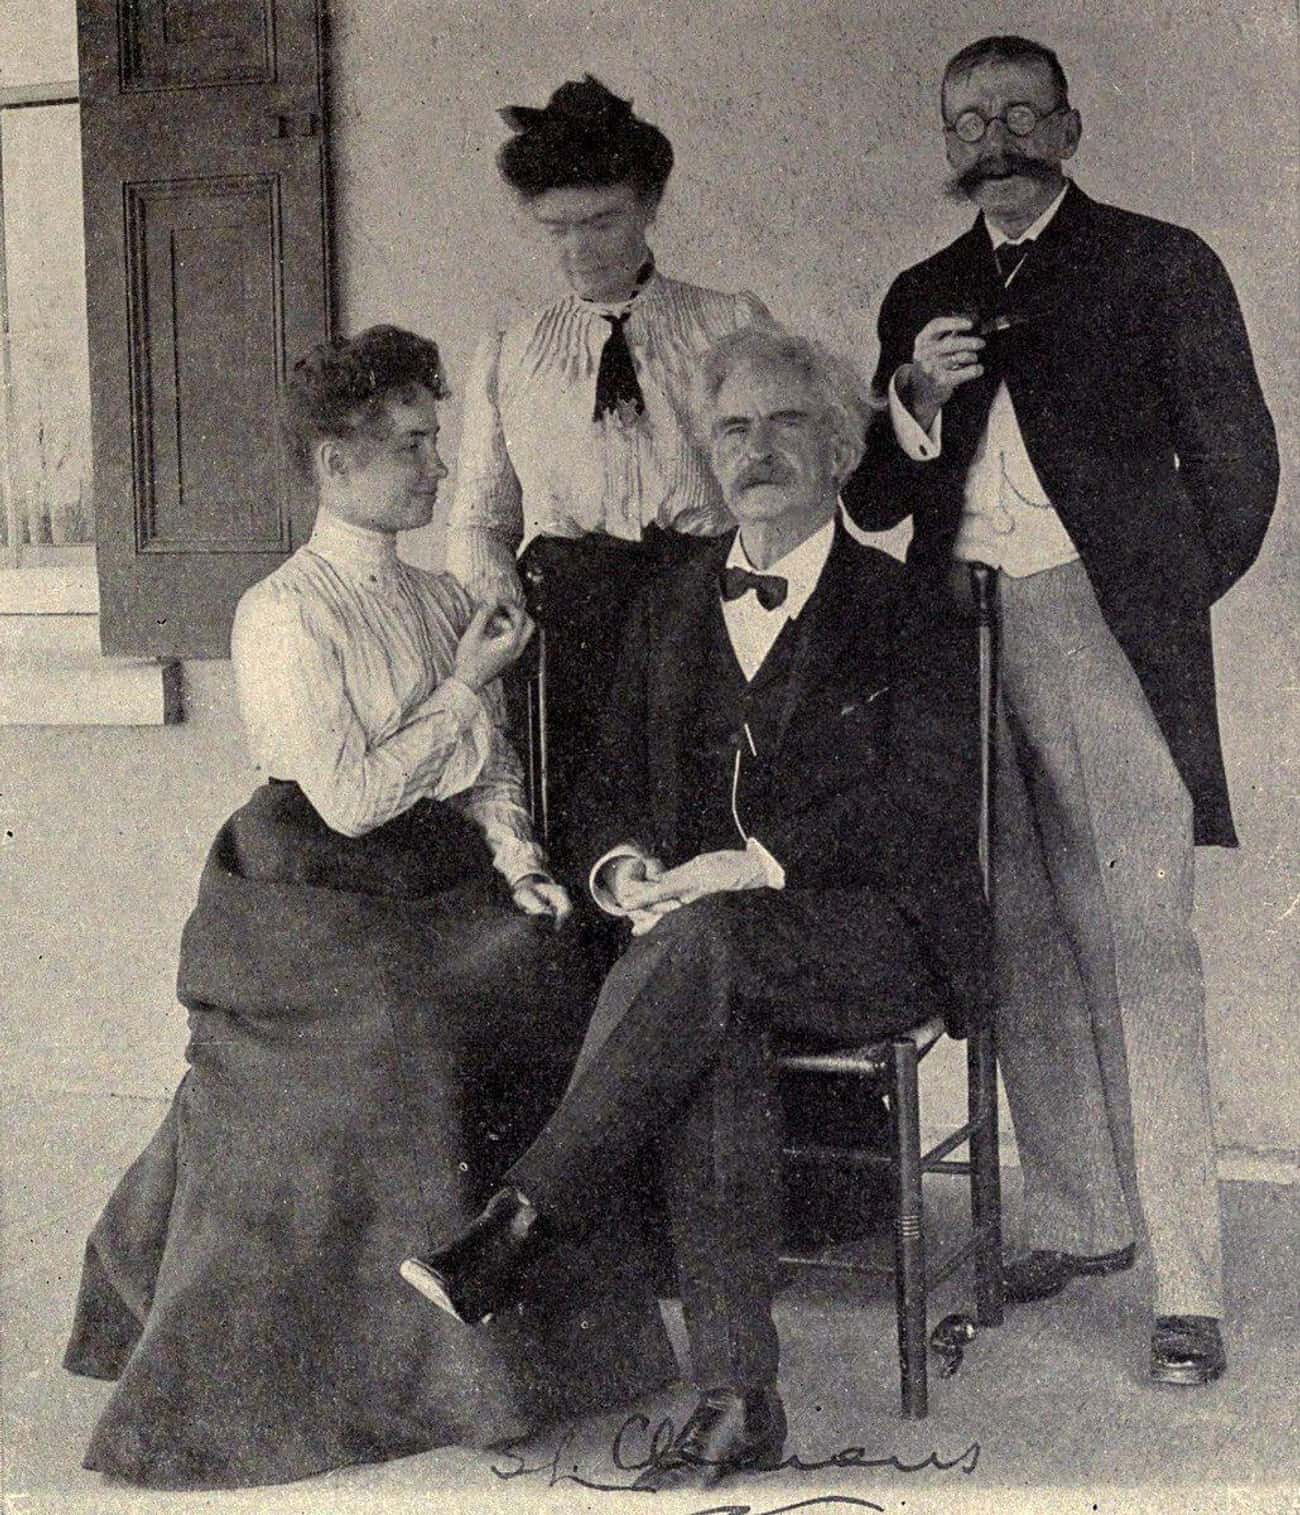 Helen Keller And Mark Twain, C is listed (or ranked) 1 on the list Photos of Historical Legends Hanging Out With Each Other